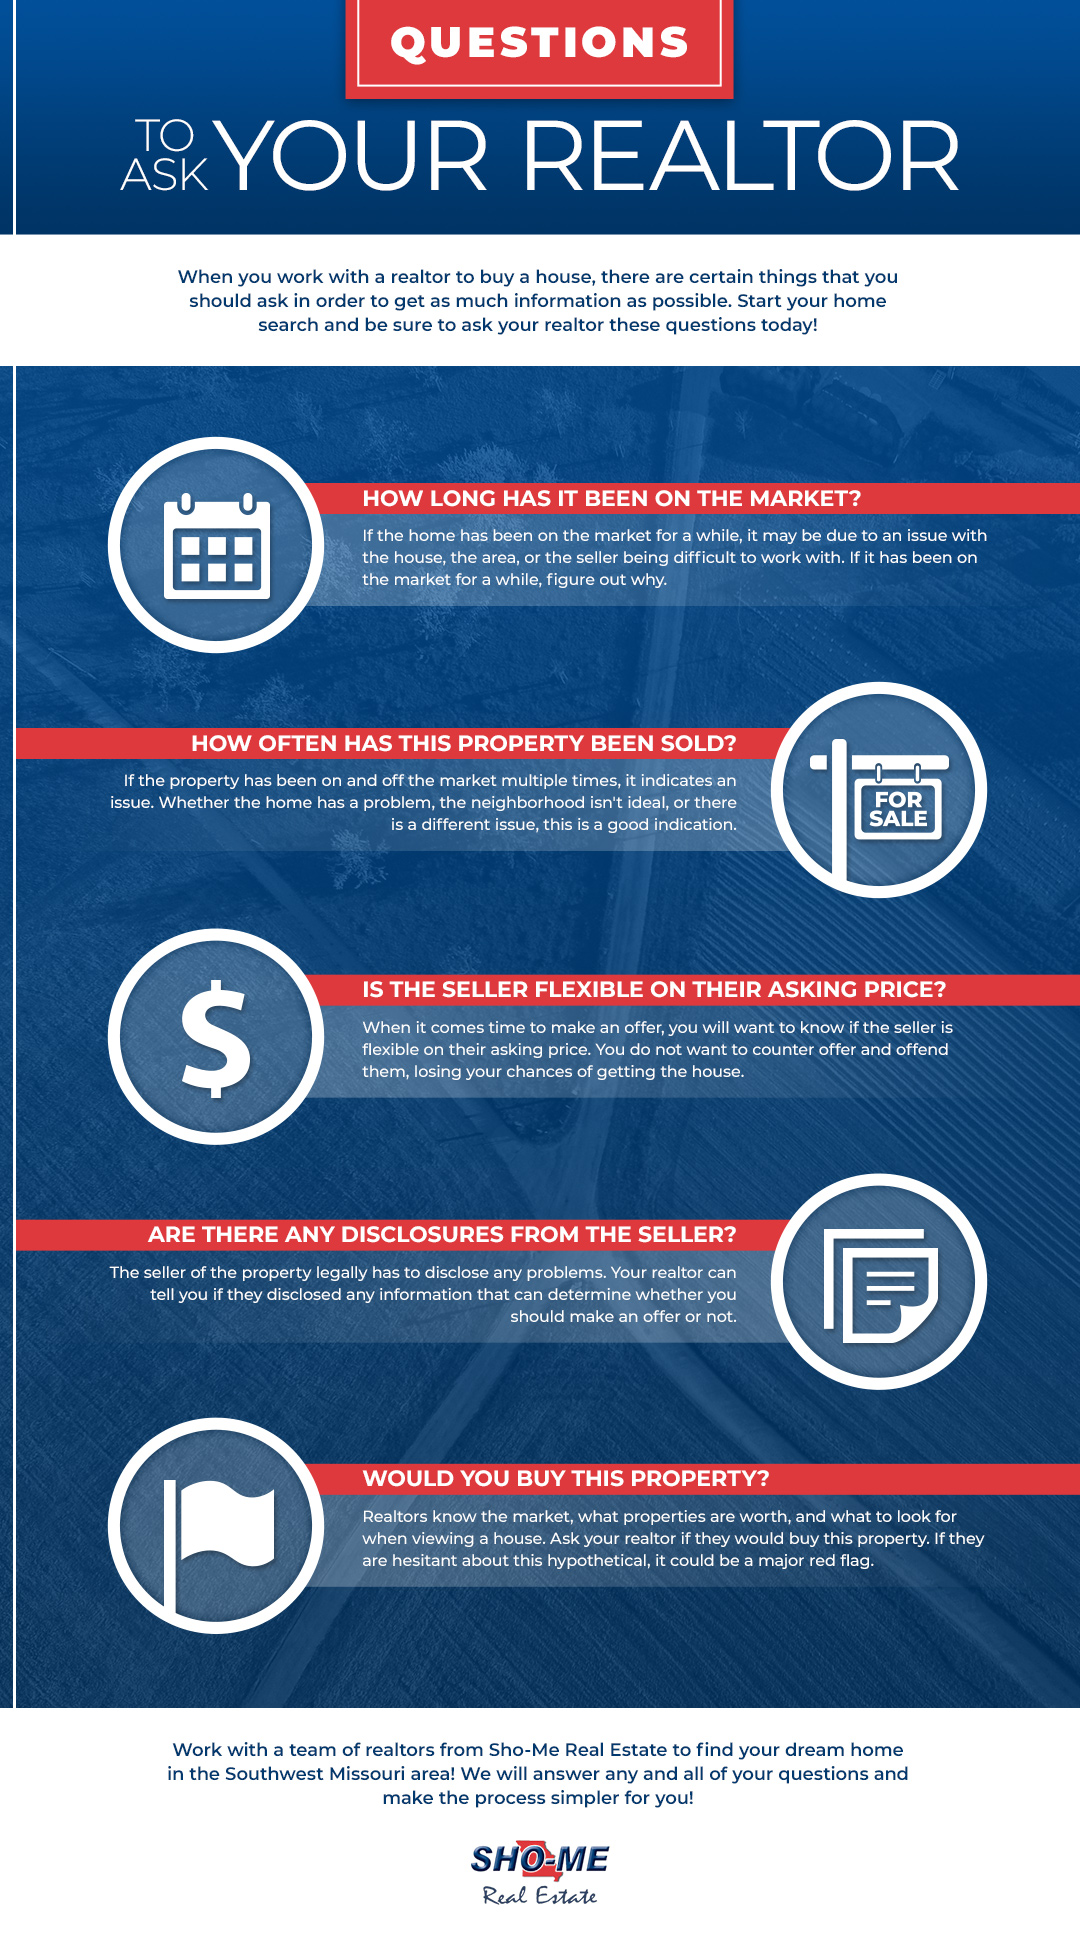 Questions To Ask Your Realtor infographic